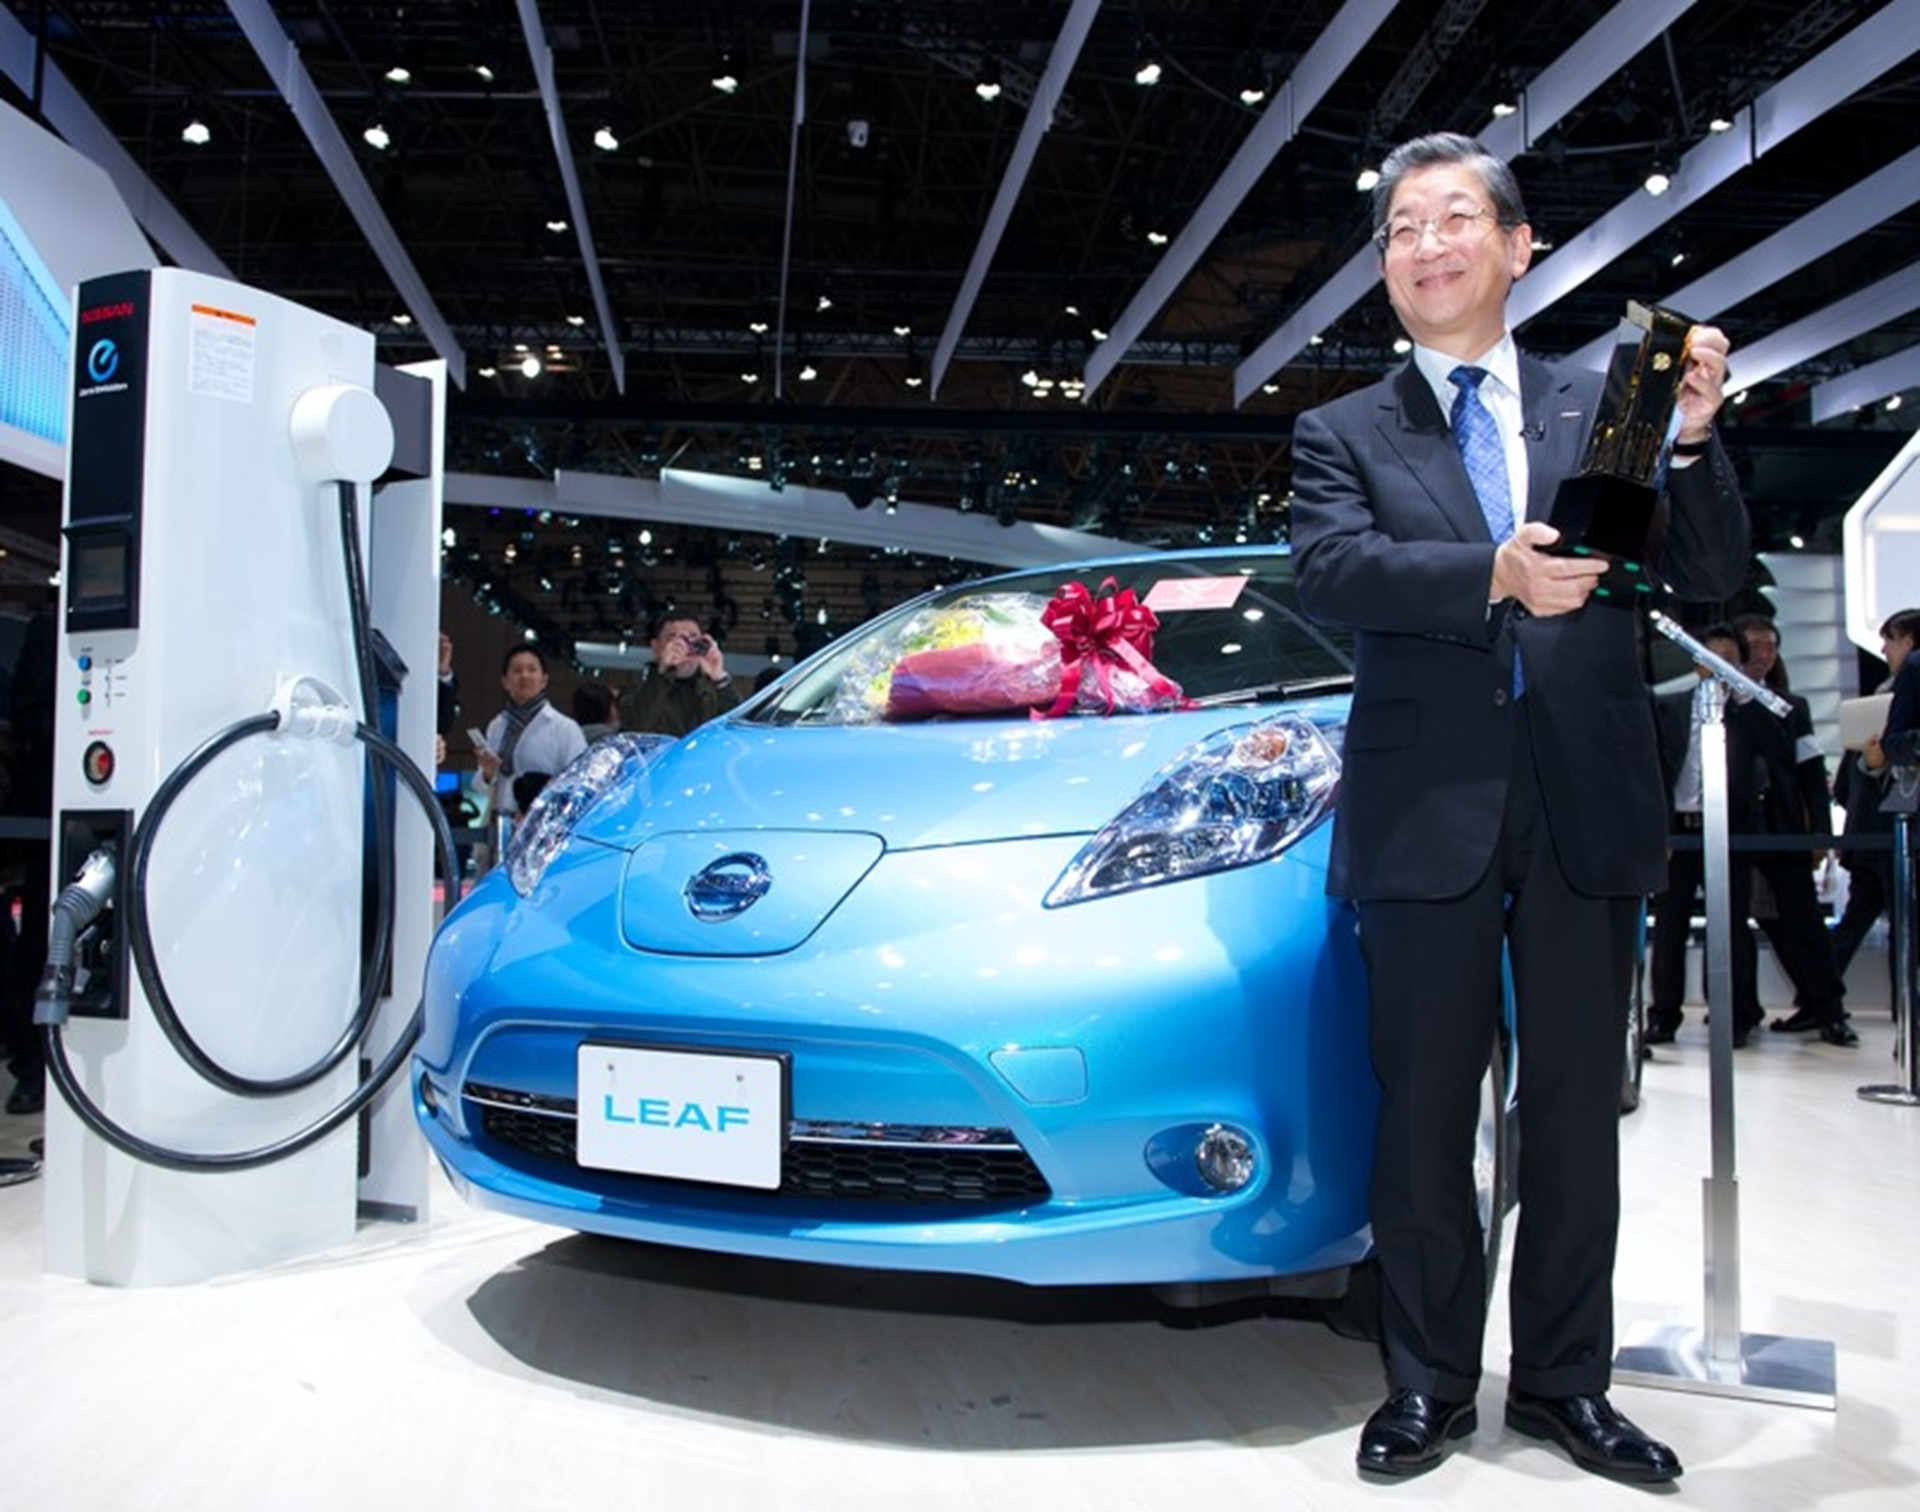 Nissan LEAF wins Japanese Car of the Year 2011-2012